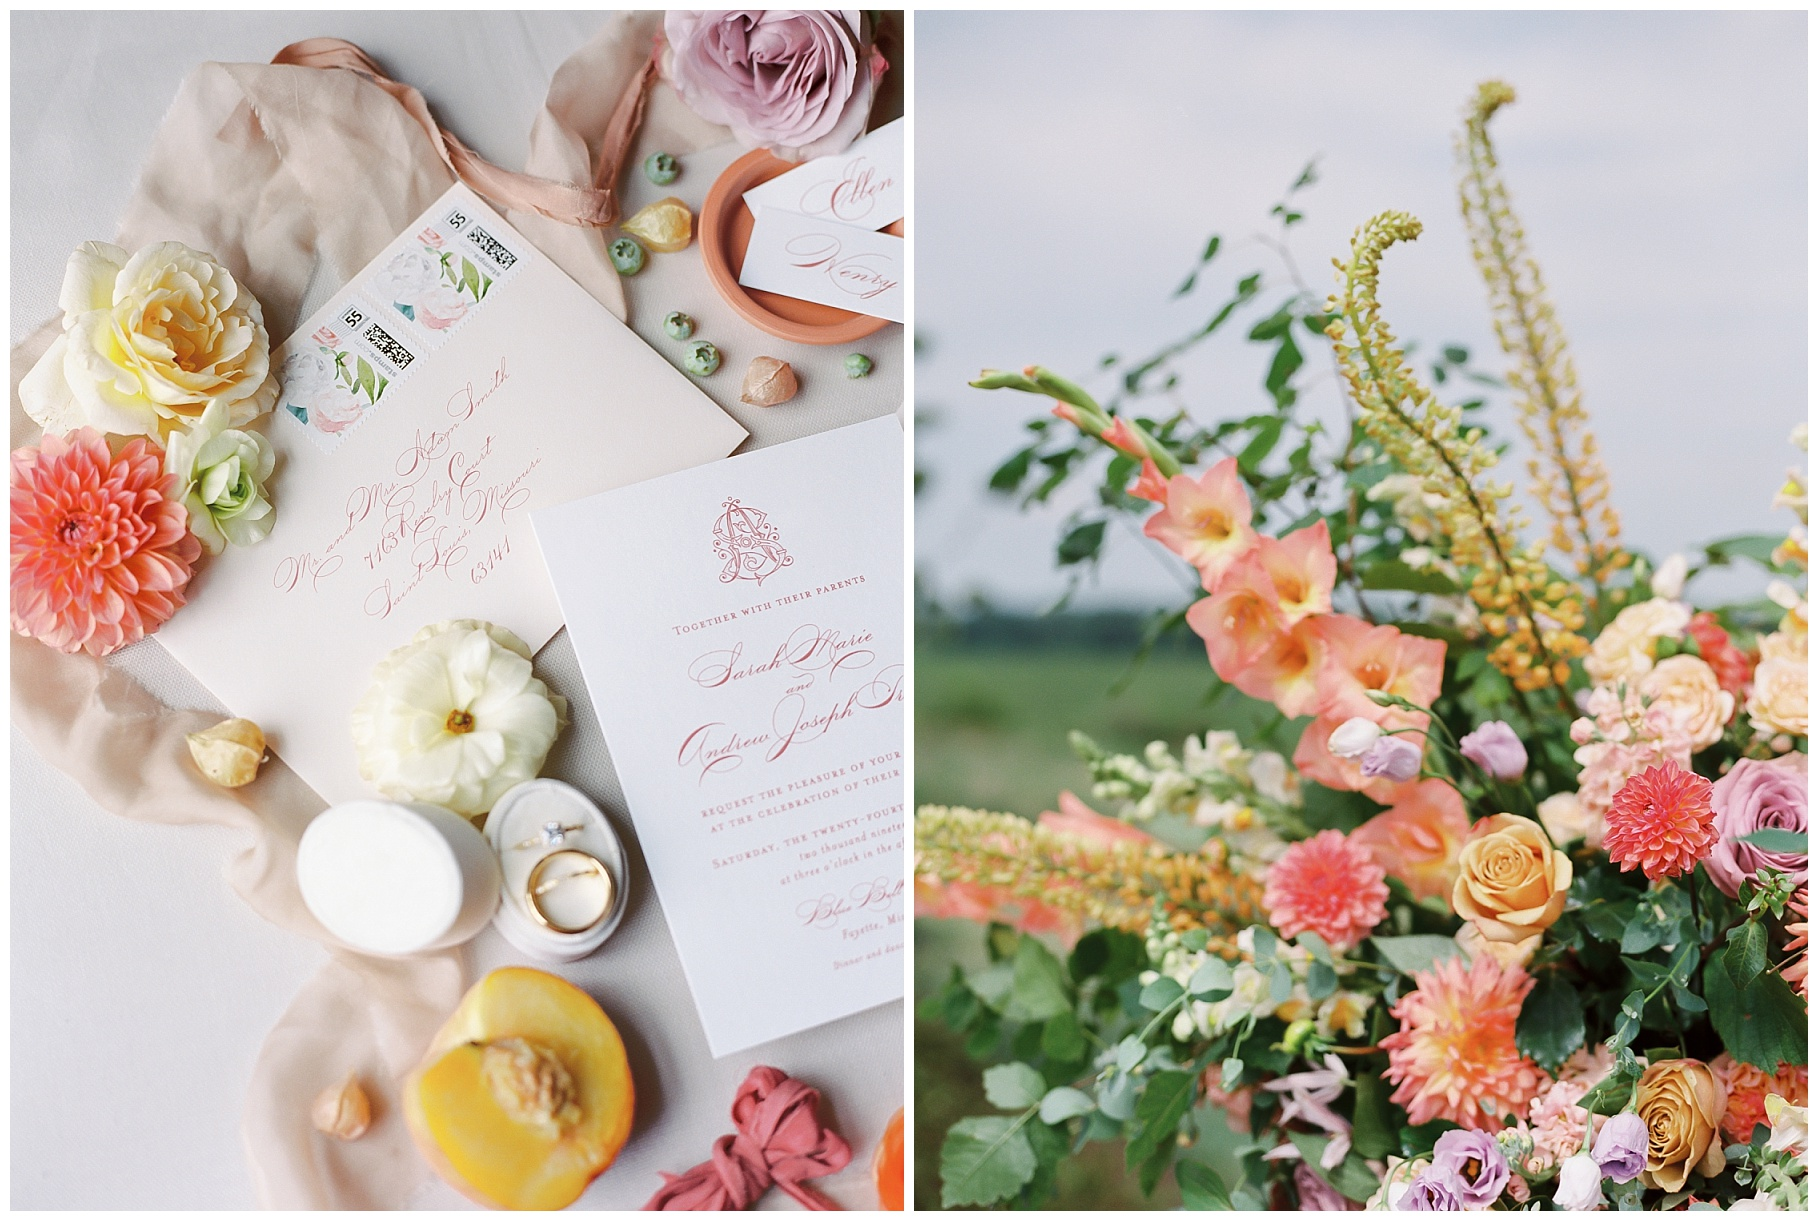 Late Summer Wedding With Pastel Toned Soiree at Blue Bell Farm by Kelsi Kliethermes Photography Best Columbia Missouri Wedding Photographer_0059.jpg